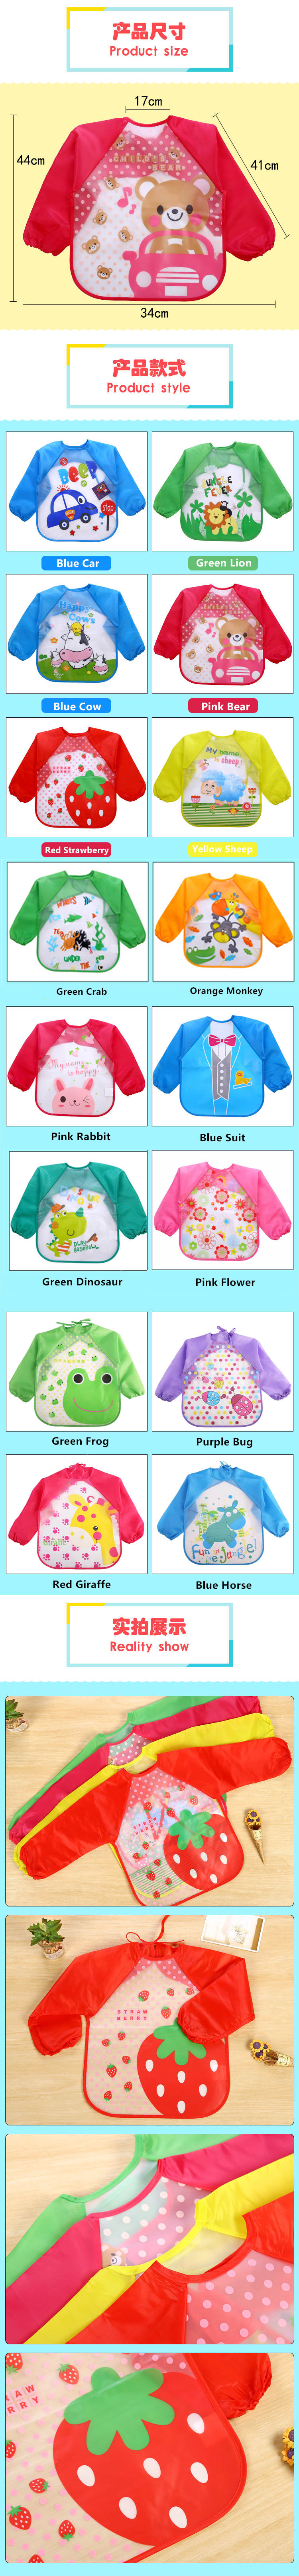 Little B House Waterproof Anti-dressed long sleeve baby bibs -BB06-Green Crab